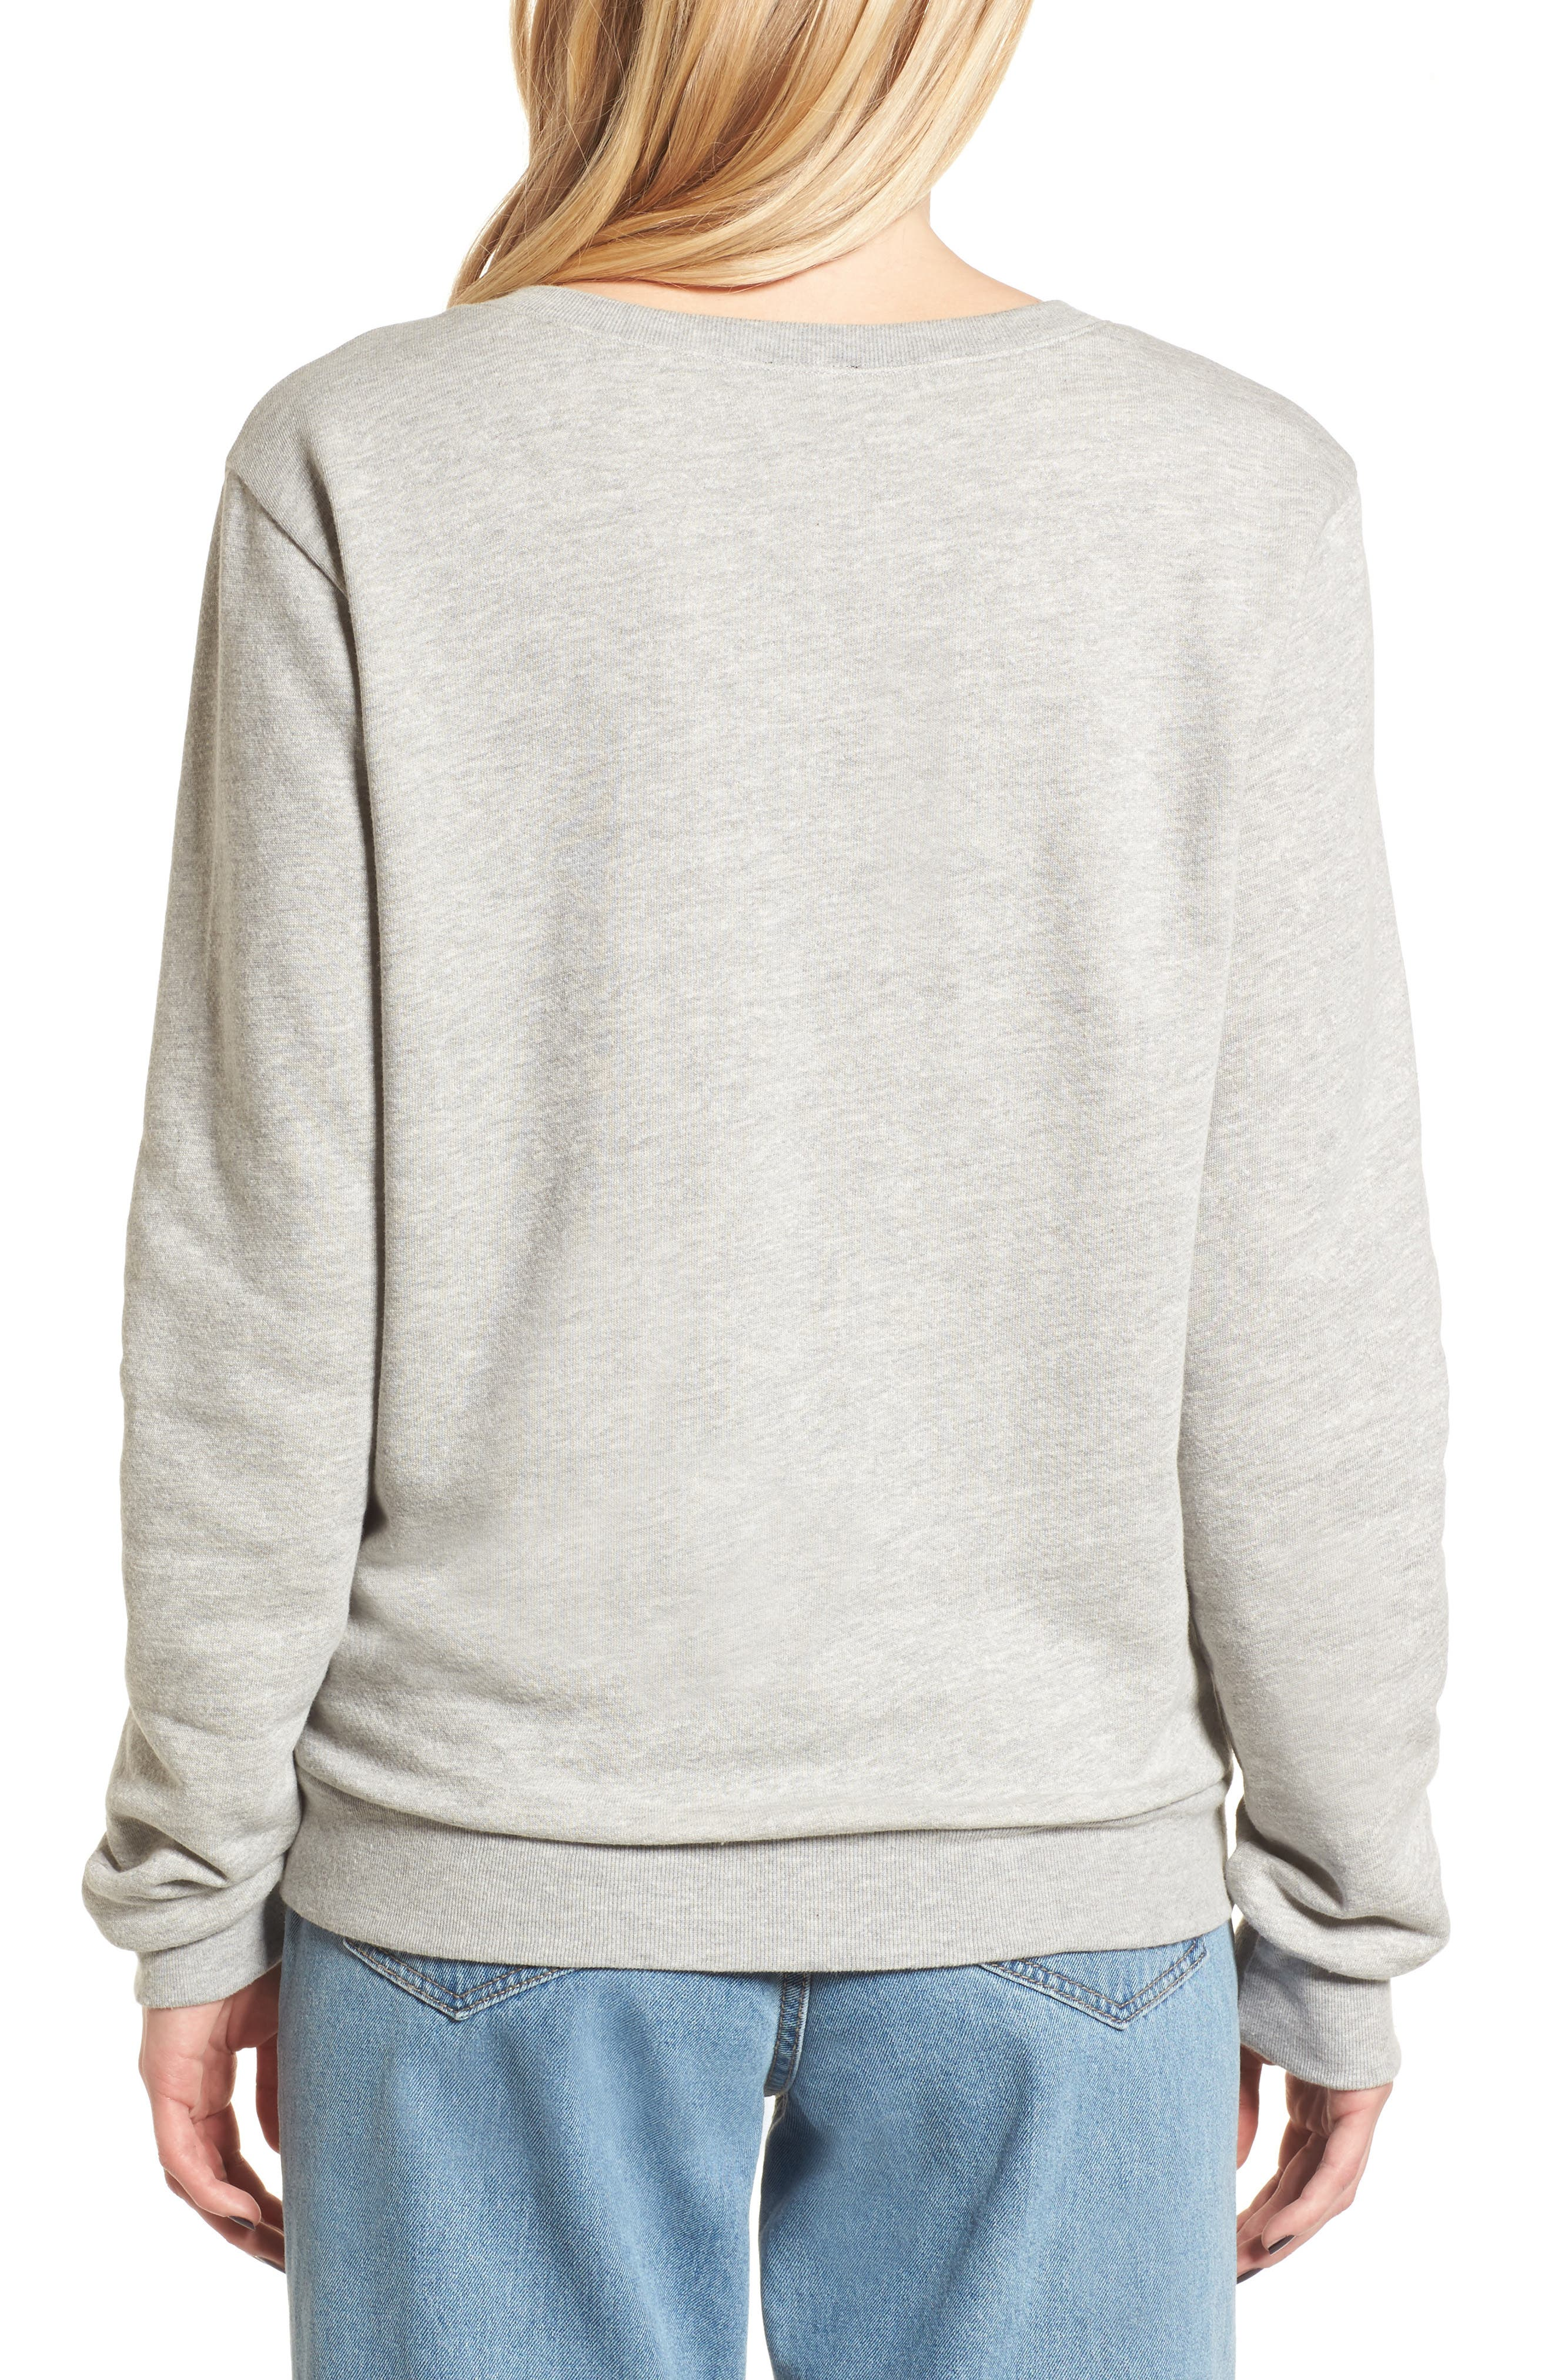 Red Hot Chili Peppers Sweatshirt,                             Alternate thumbnail 2, color,